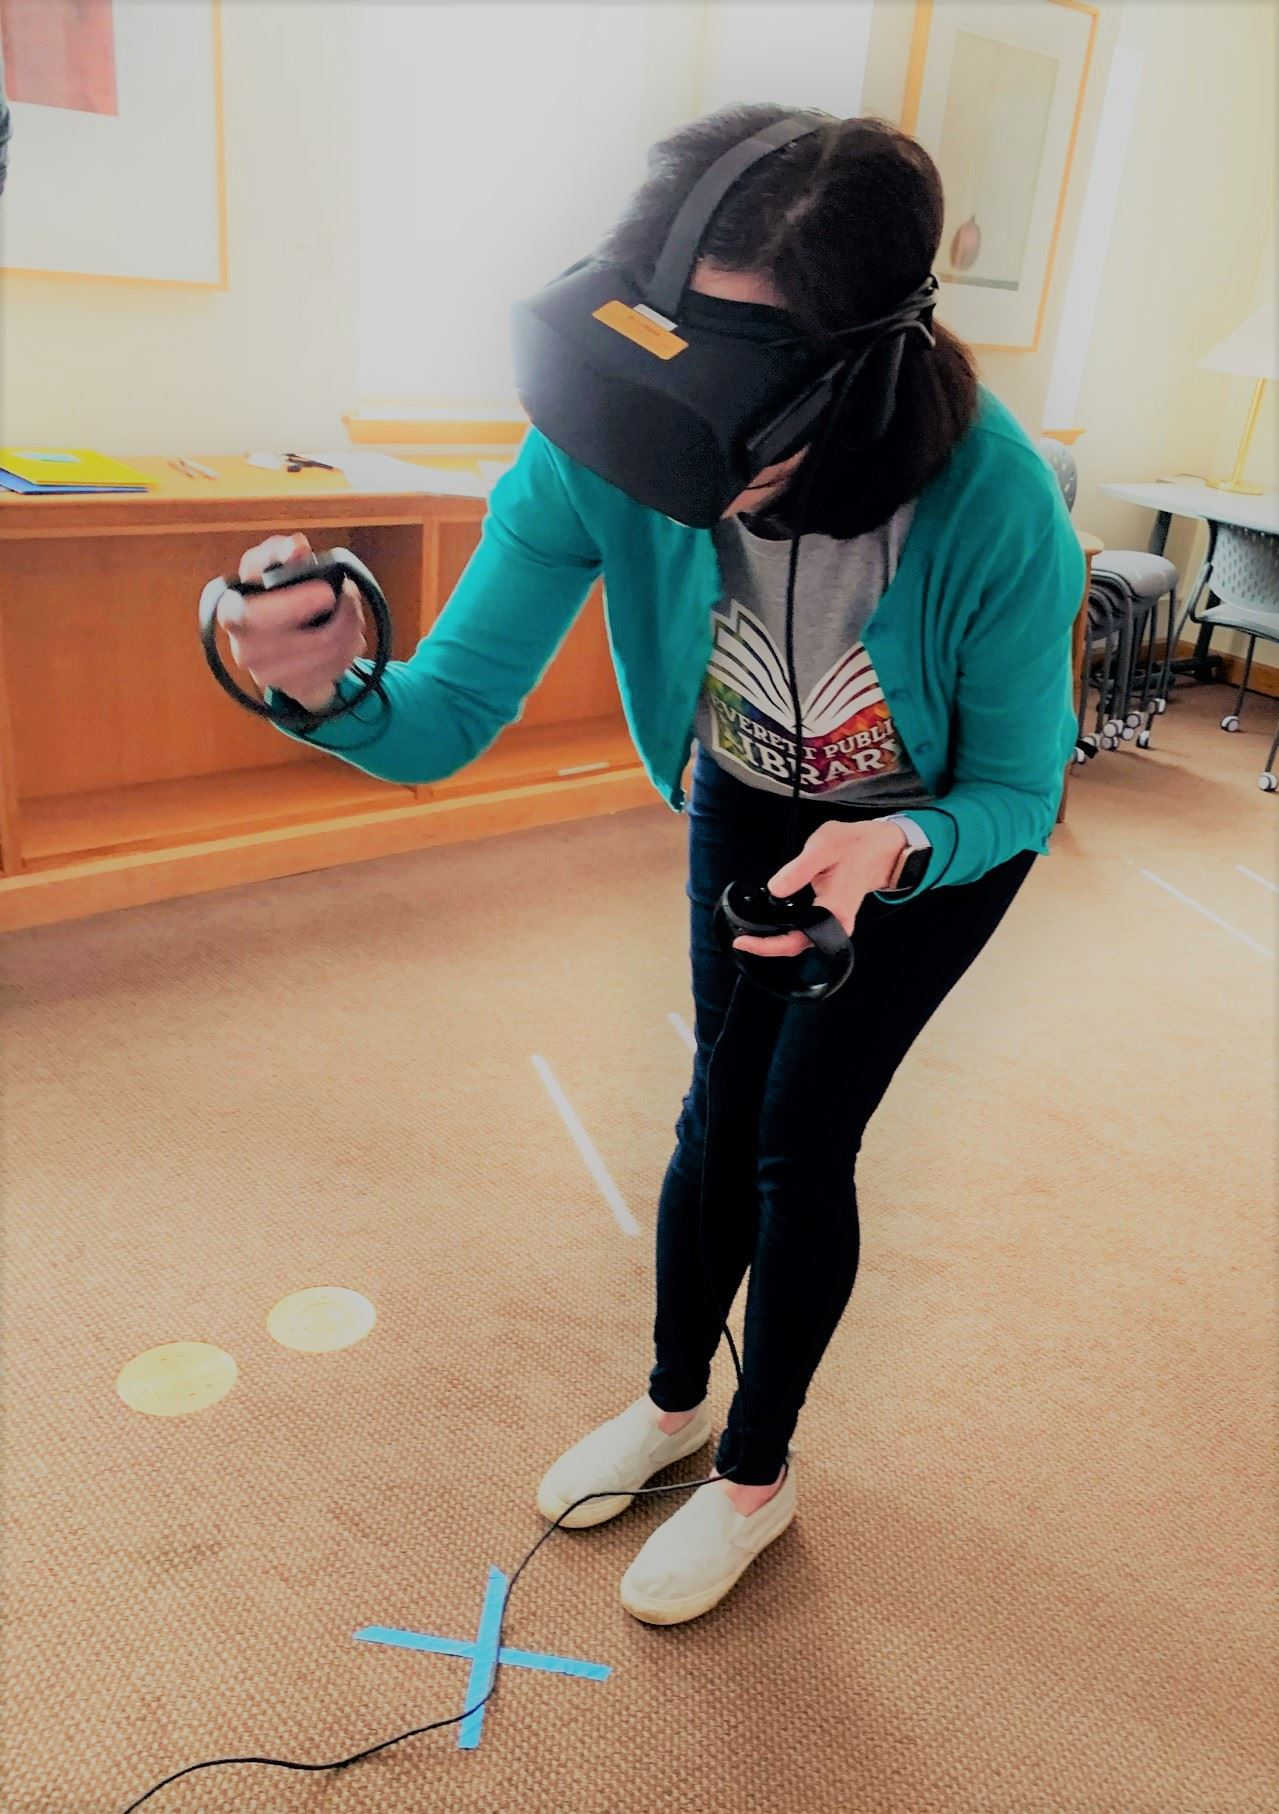 Photo of woman trying out a virtual reality headset at the library.